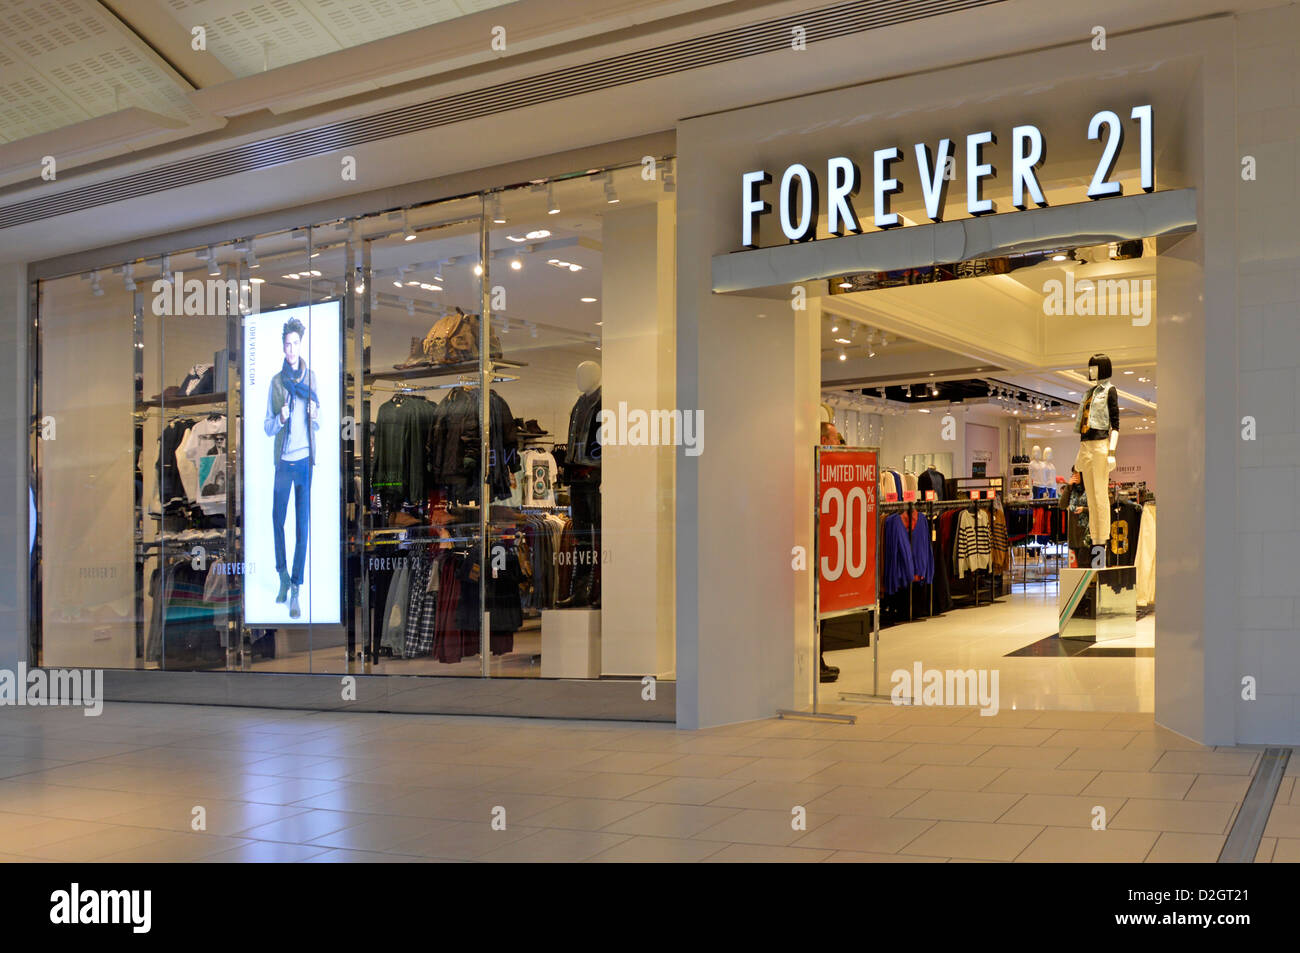 City center clothing stores